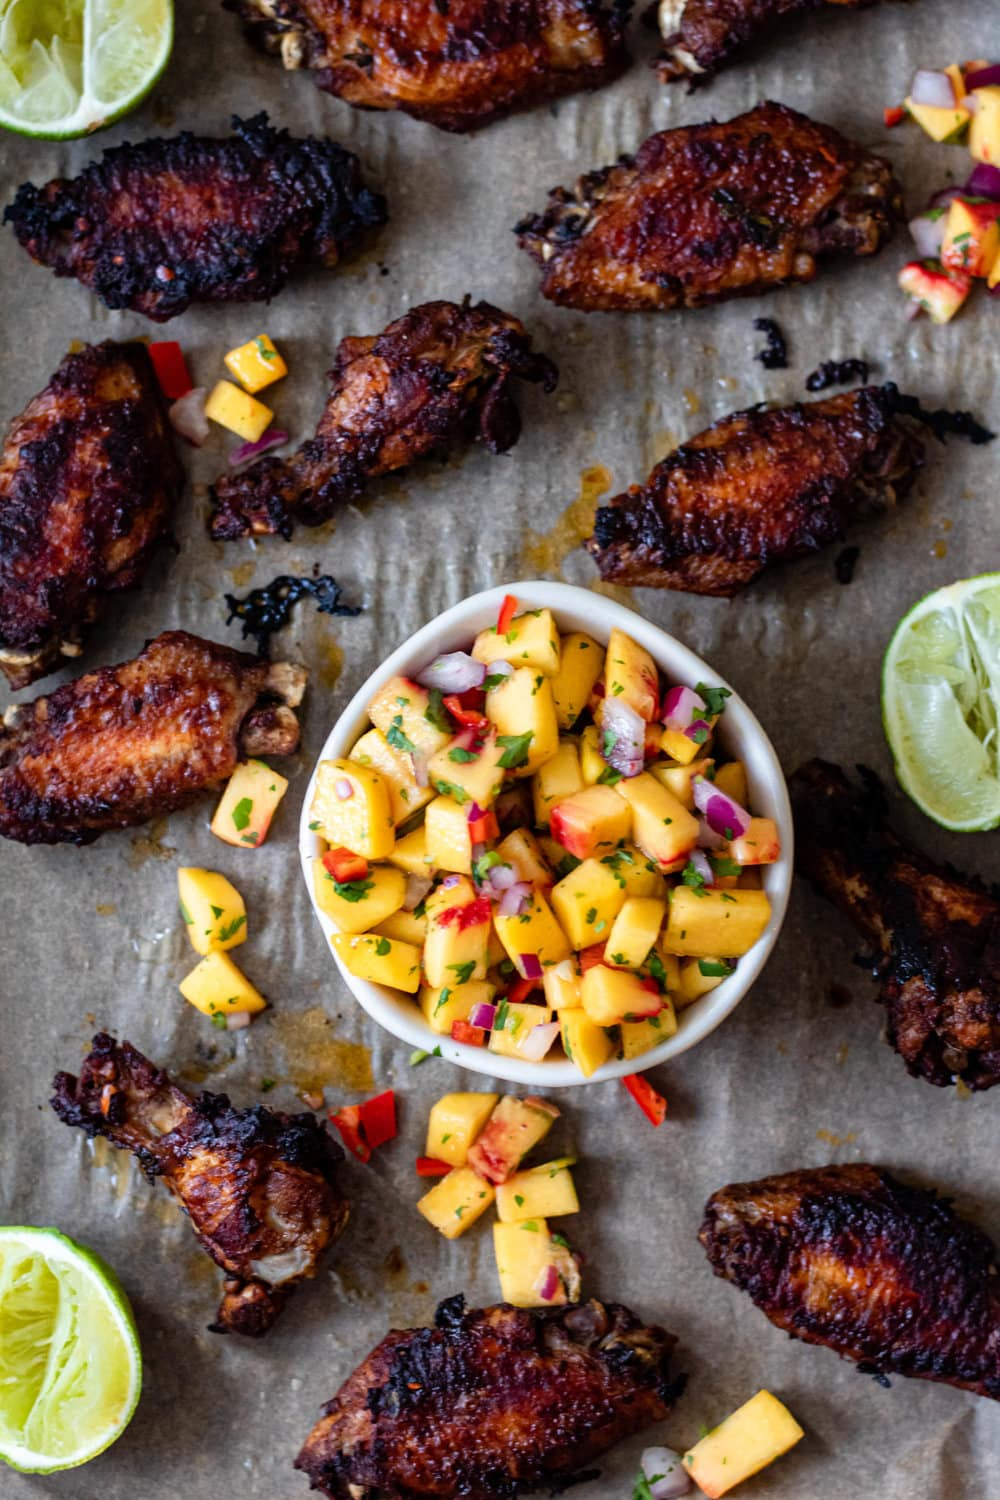 Crispy Jerk Chicken Wings with Mango Salsa